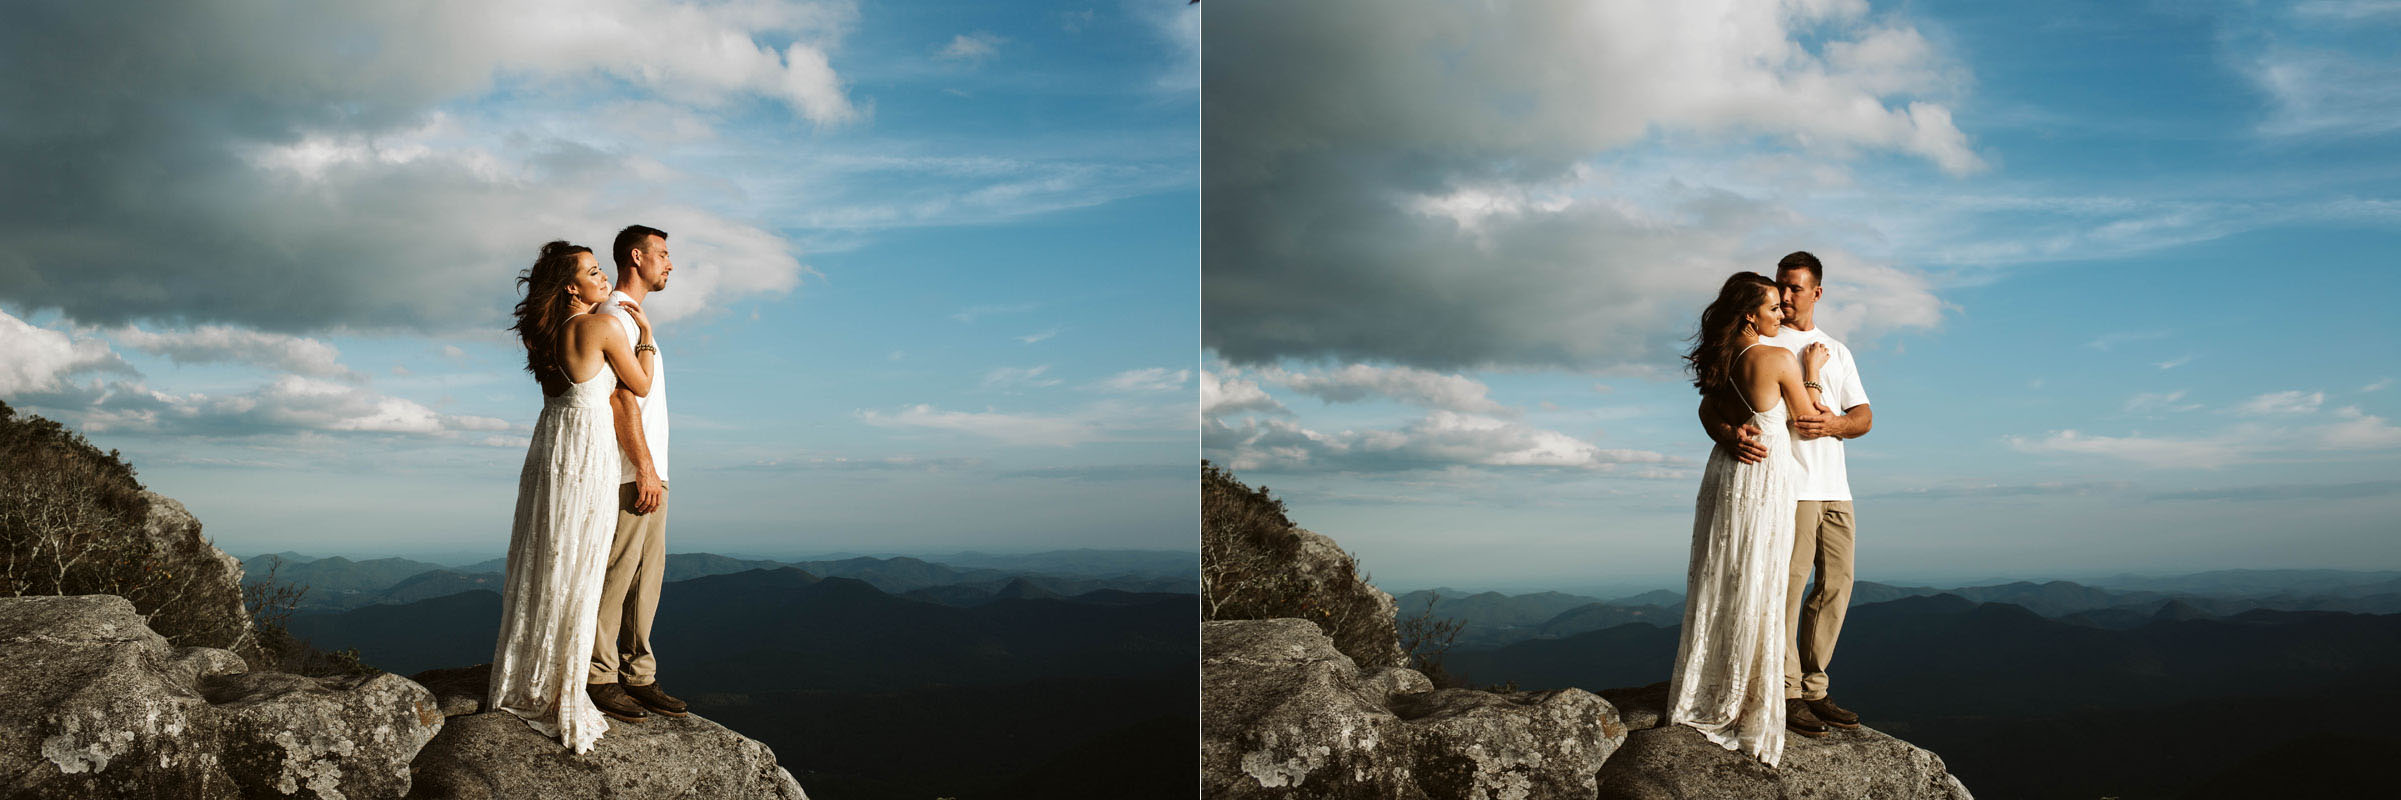 adventure-engagement-session-blue-ridge-mountains-asheville-wedding-photographer (39).jpg